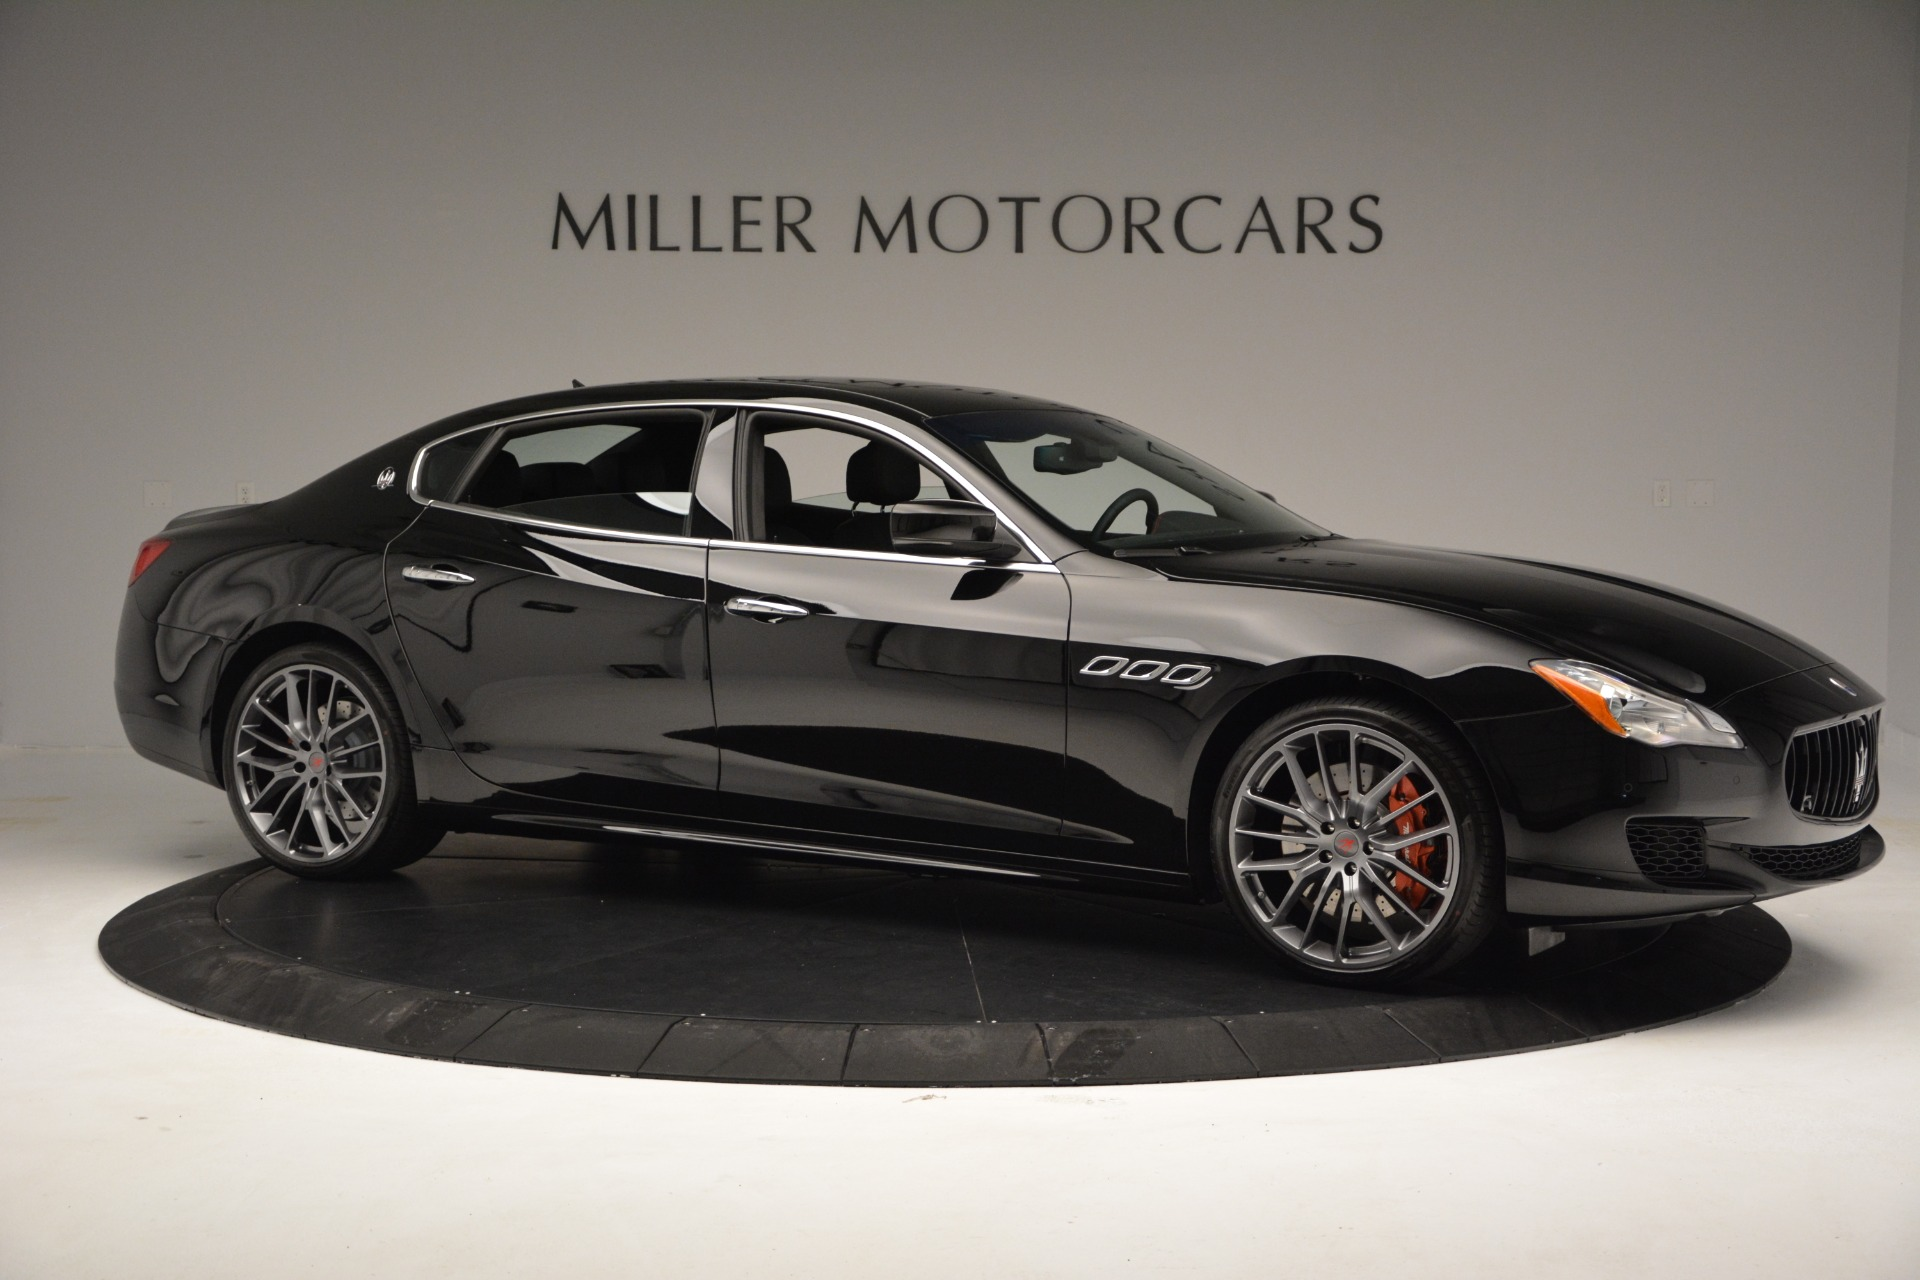 Used 2015 Maserati Quattroporte GTS For Sale In Westport, CT 2993_p10